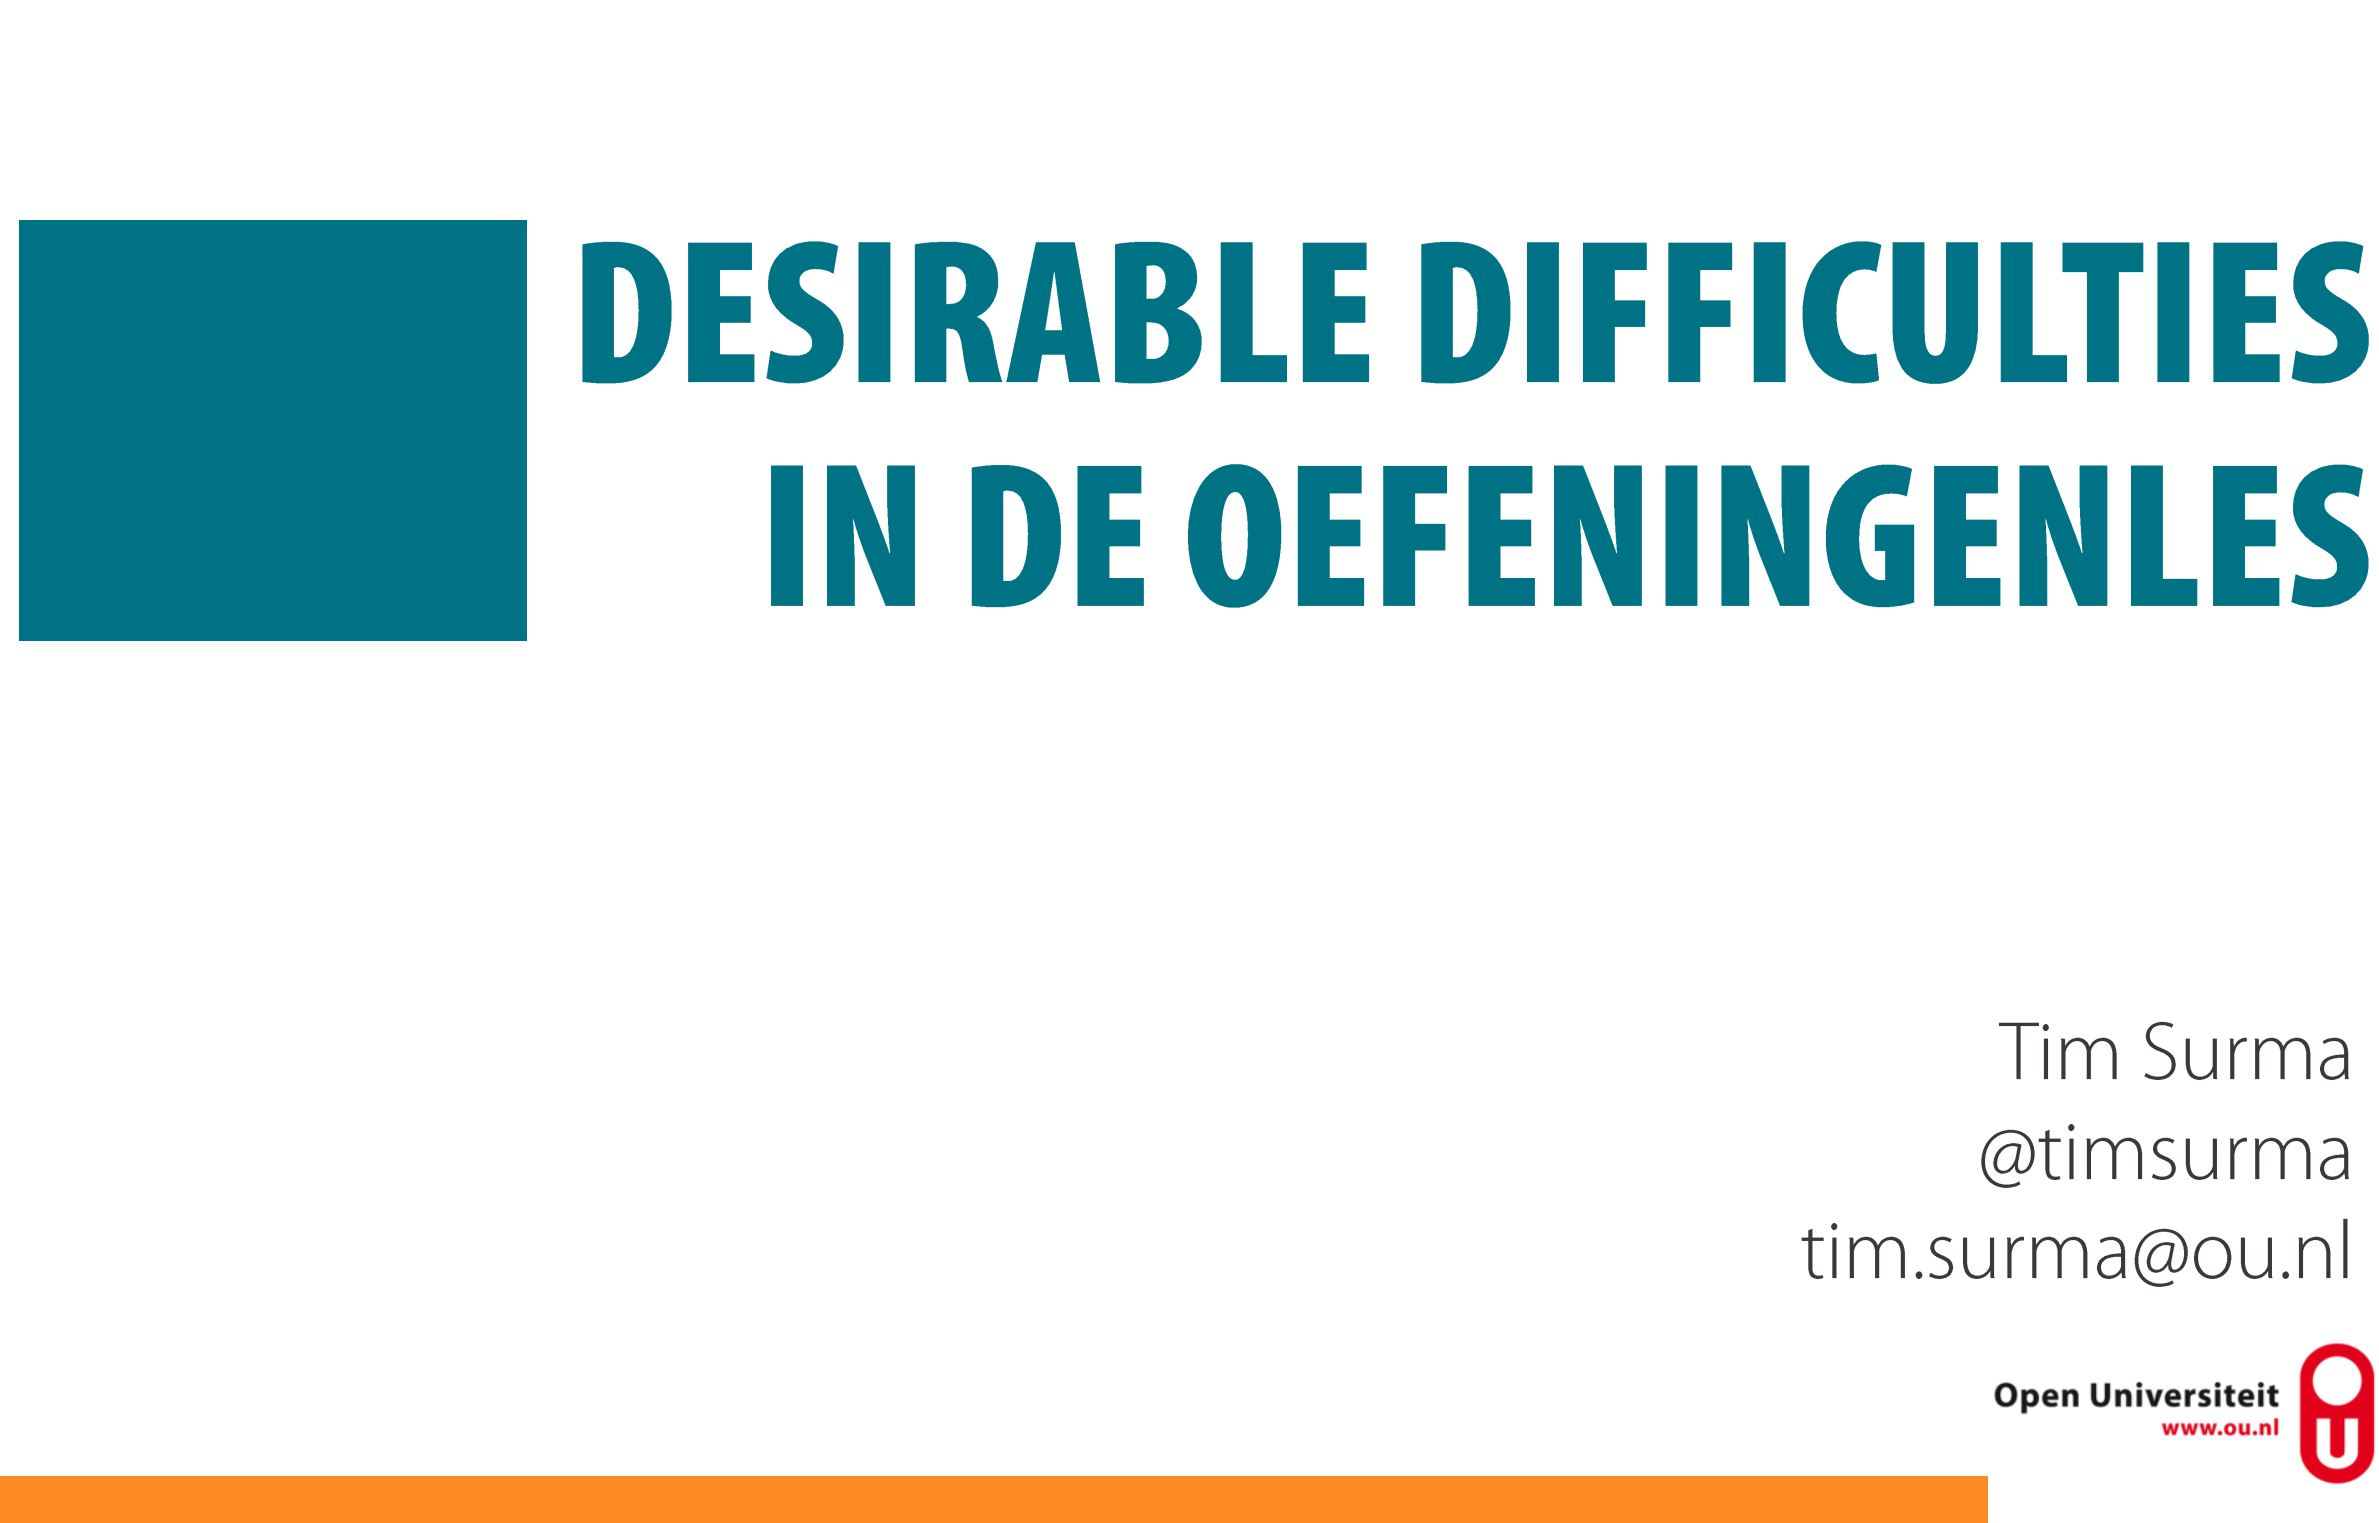 Desirable difficulties in de oefeningenles